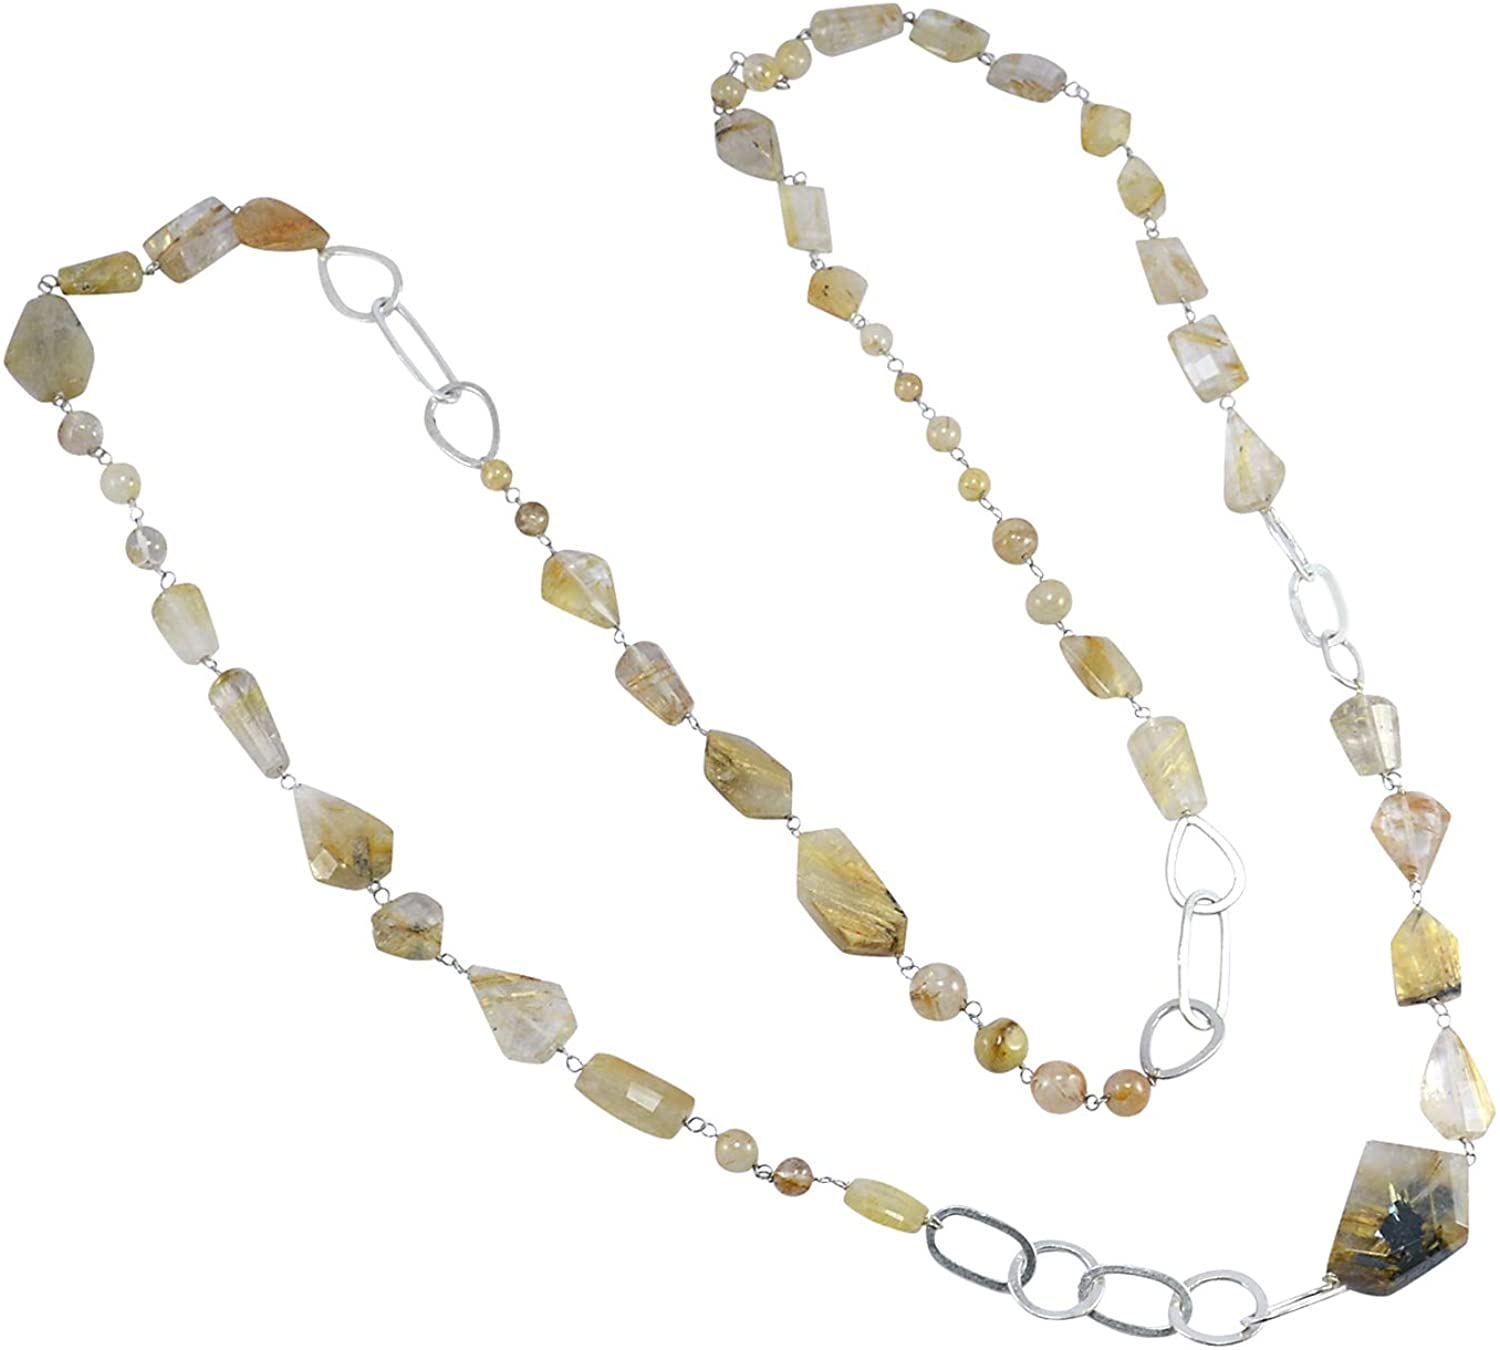 Saamarth Impex Handmade Jewelry Manufacturer 925 Sterling Silver, Yellow Golden Rutile, Length- 104 Cm Chain Necklace Jaipur Rajasthan India